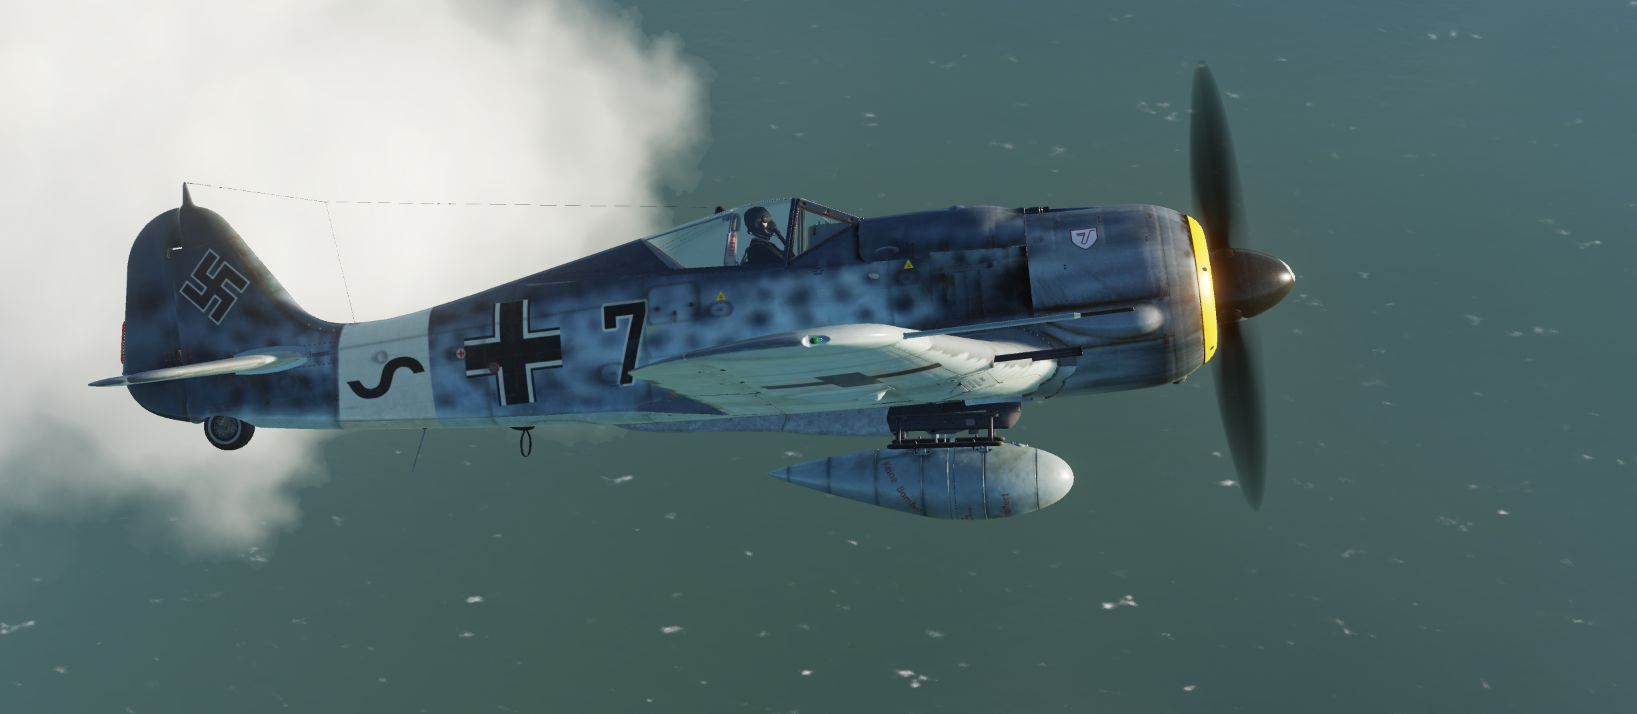 FW190 A8  ultimate pack  : One new Skin + Darker RLM cockpit